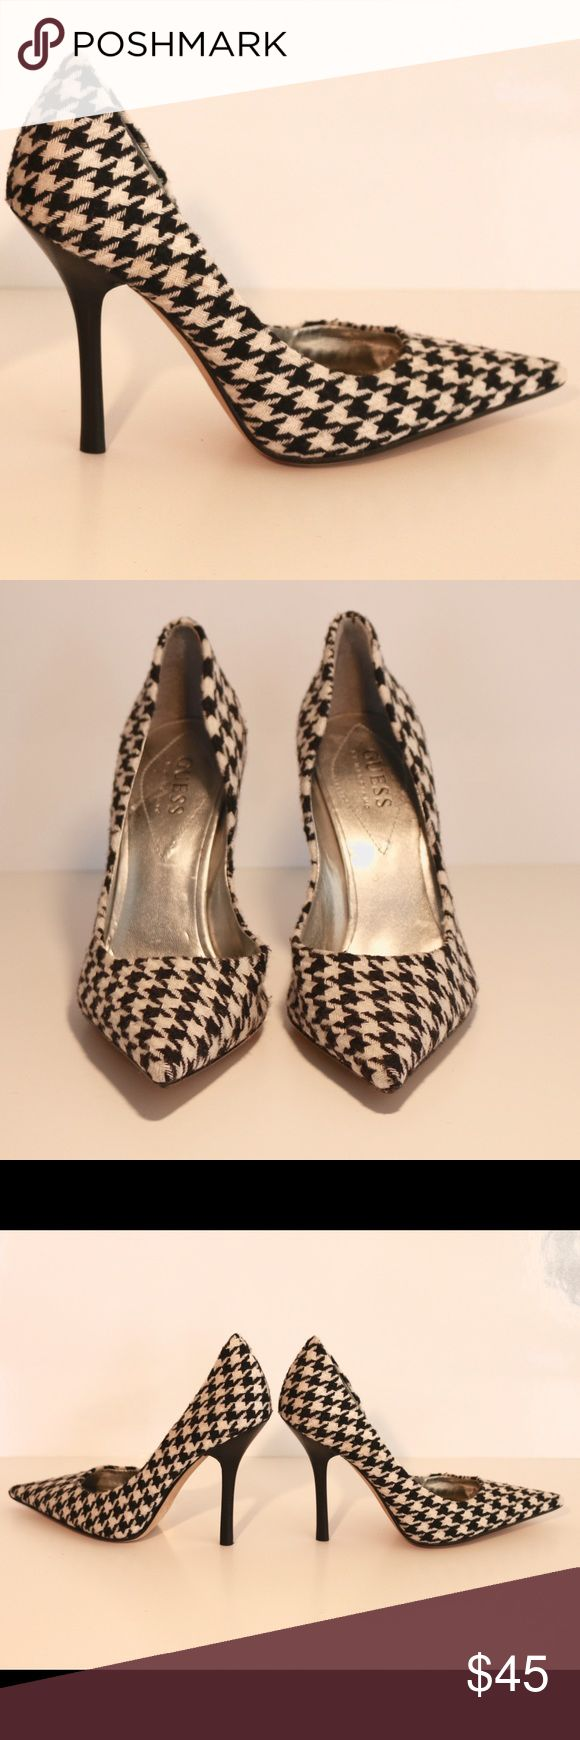 Guess by Marciano Houndstooth Pump New. Multi texture pattern fabric. Leather Sole. Guess by Marciano Shoes Heels